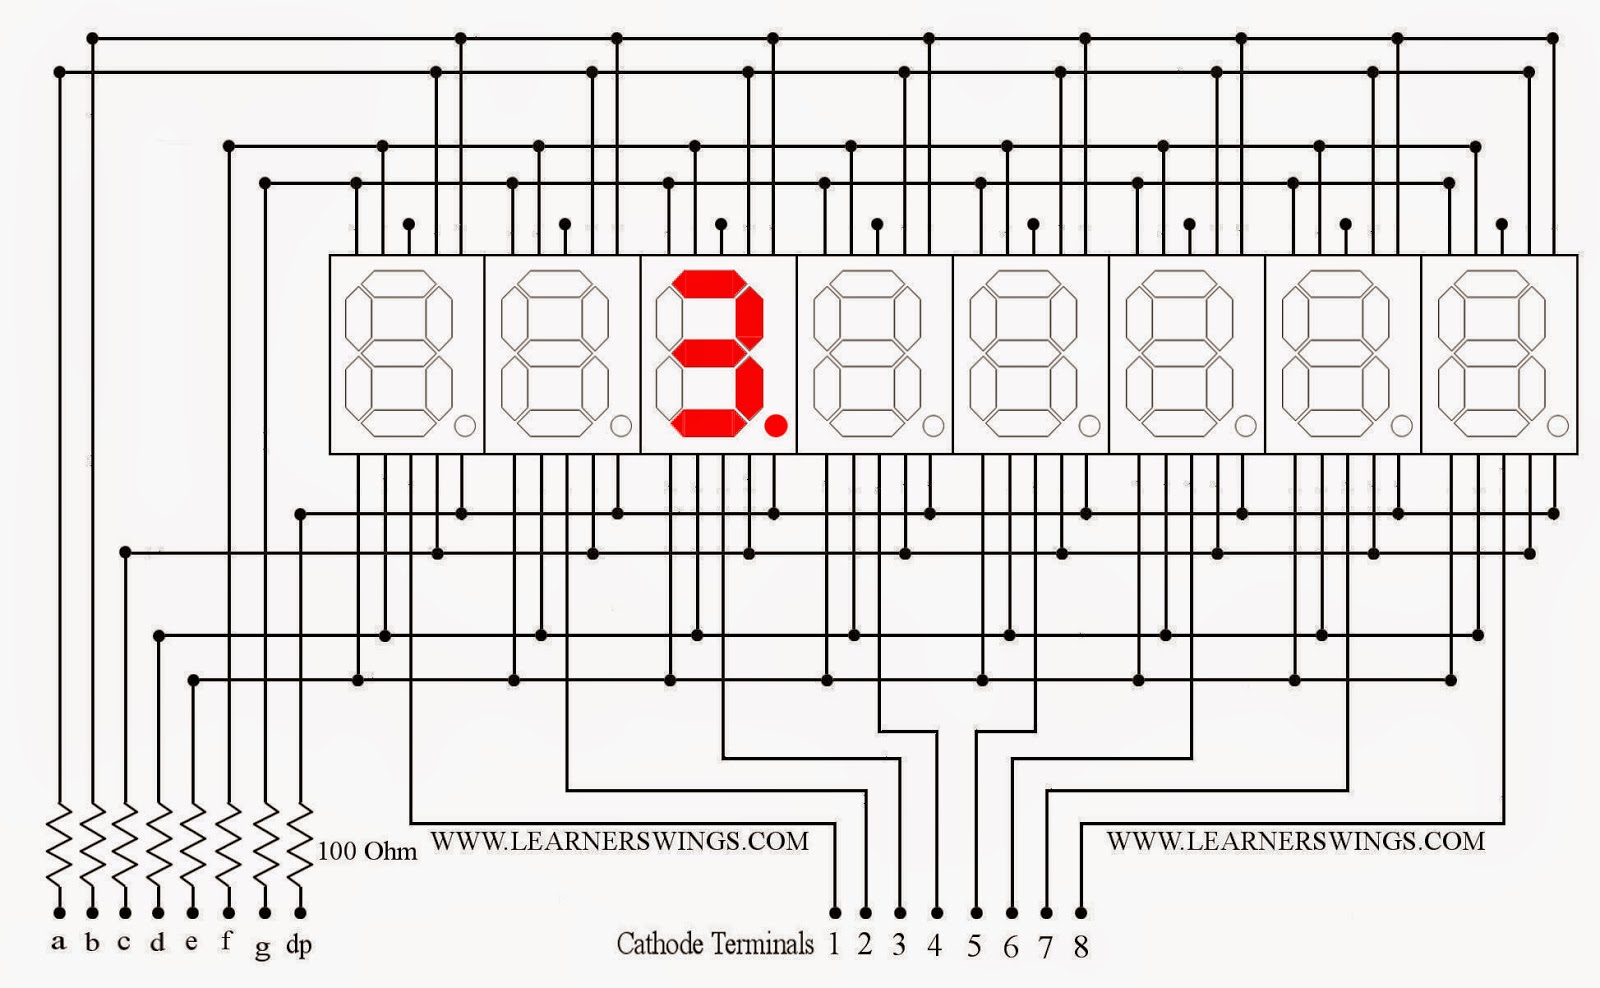 how to display 3 in the 3rd seven segment display using